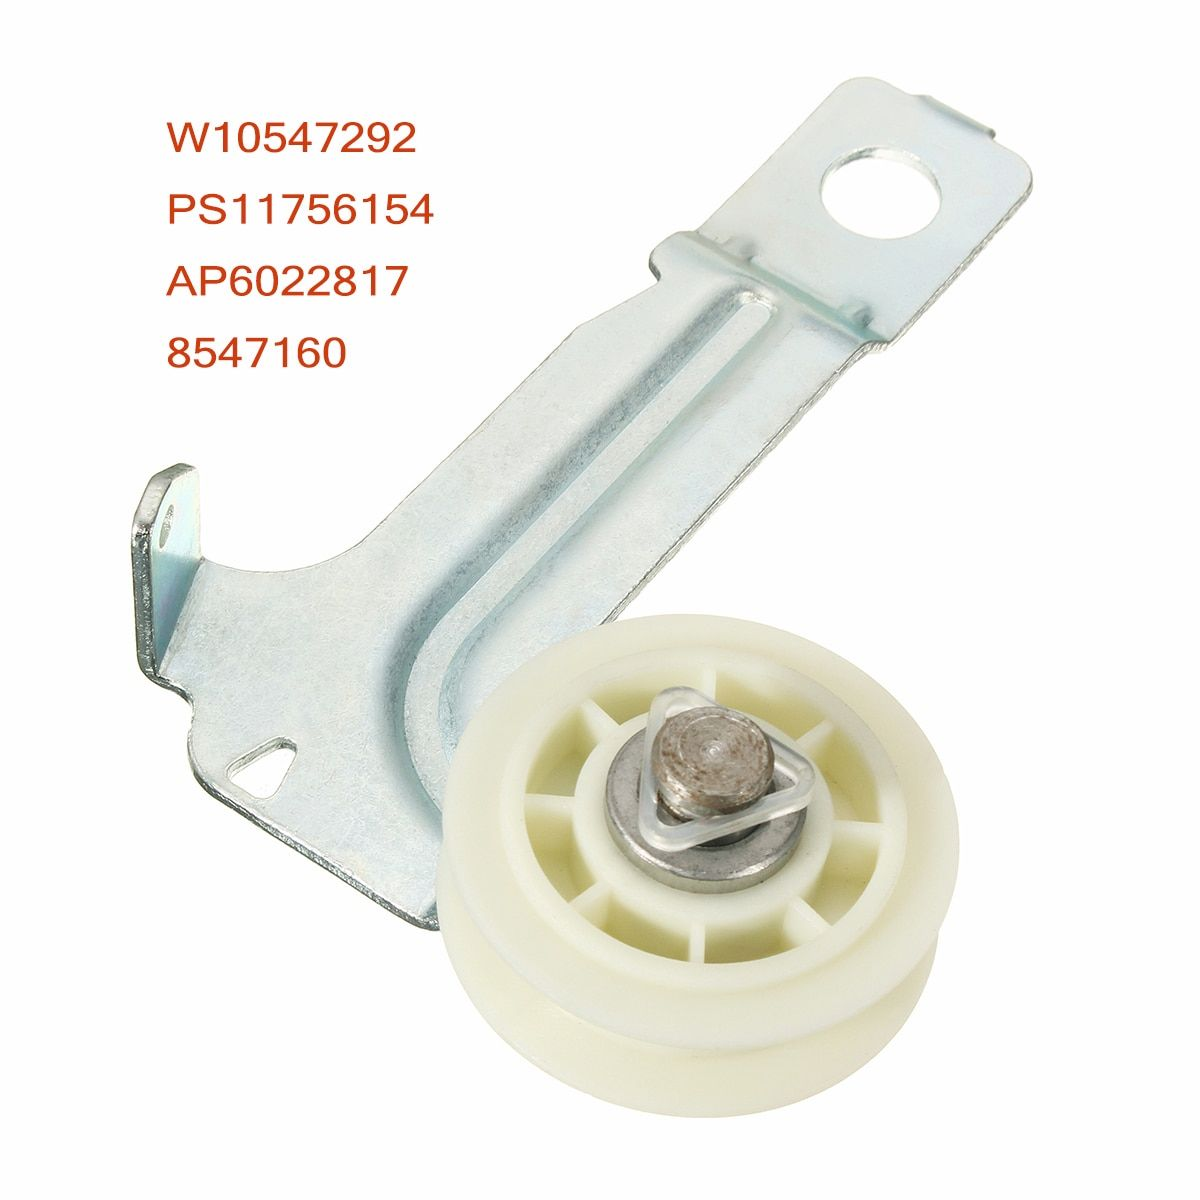 Dryer idler pulley assembly replacement w10547292